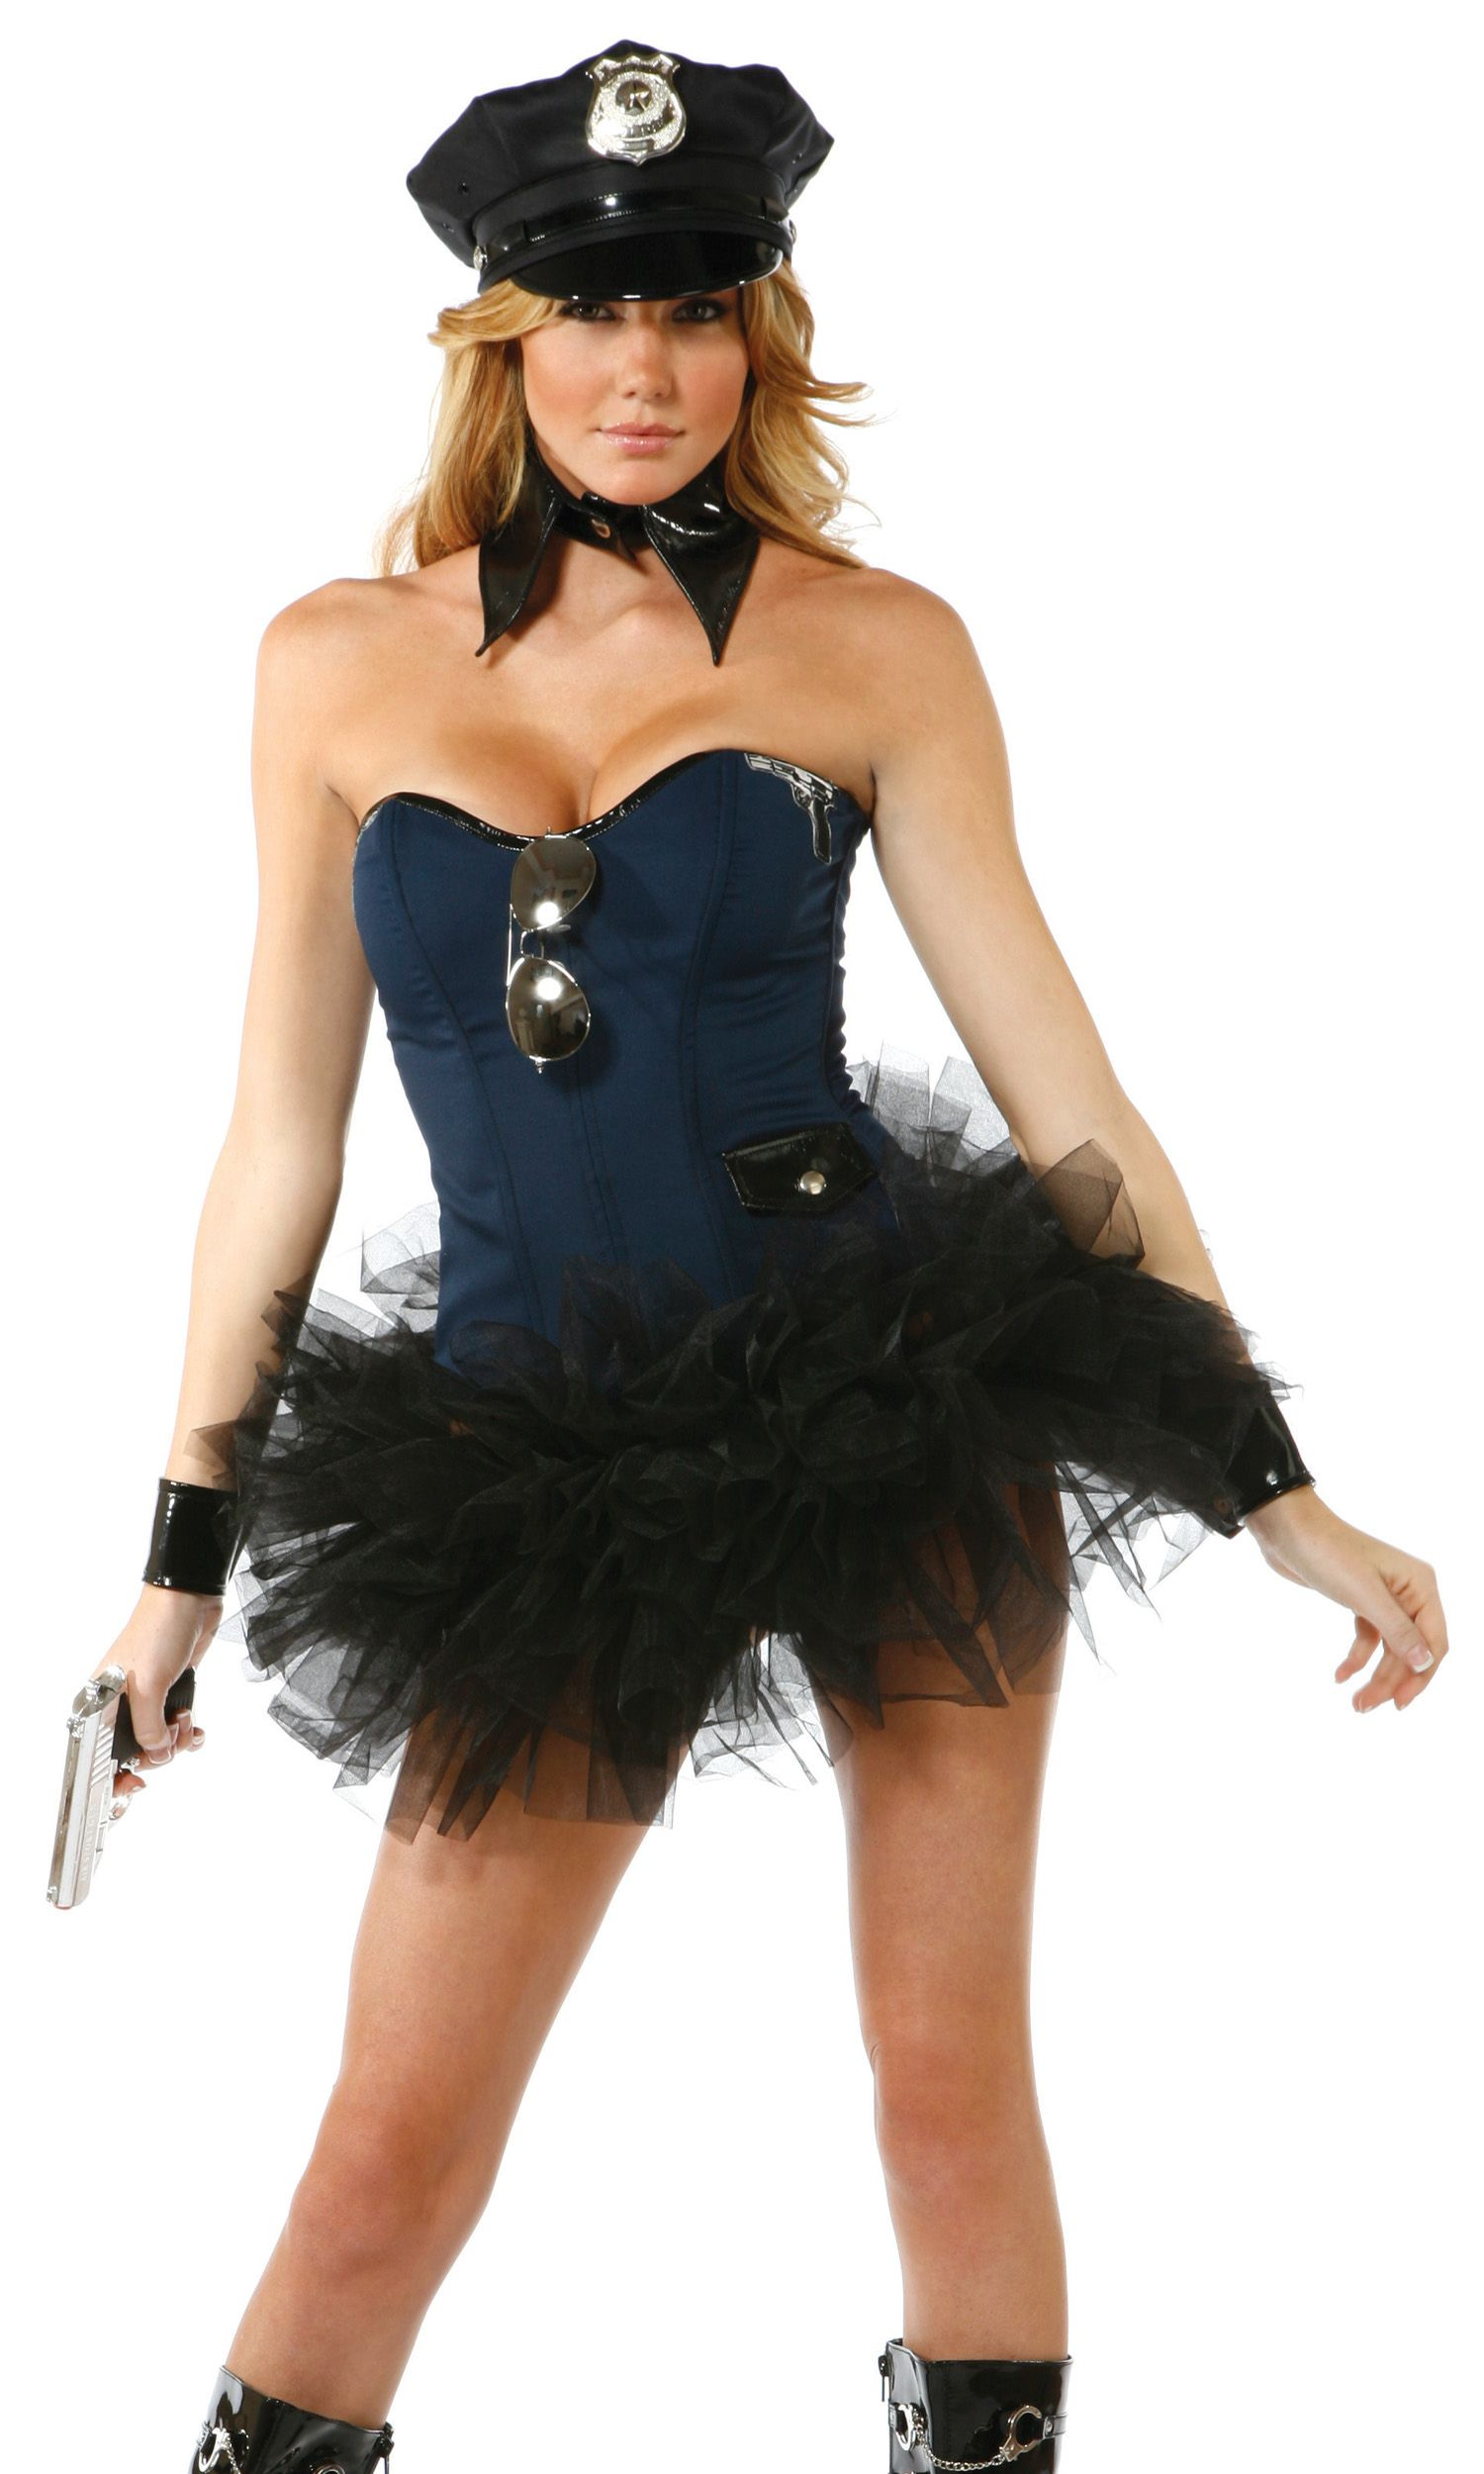 ea9005578 Posh Patrol - Sexy Police Costume by Forplay